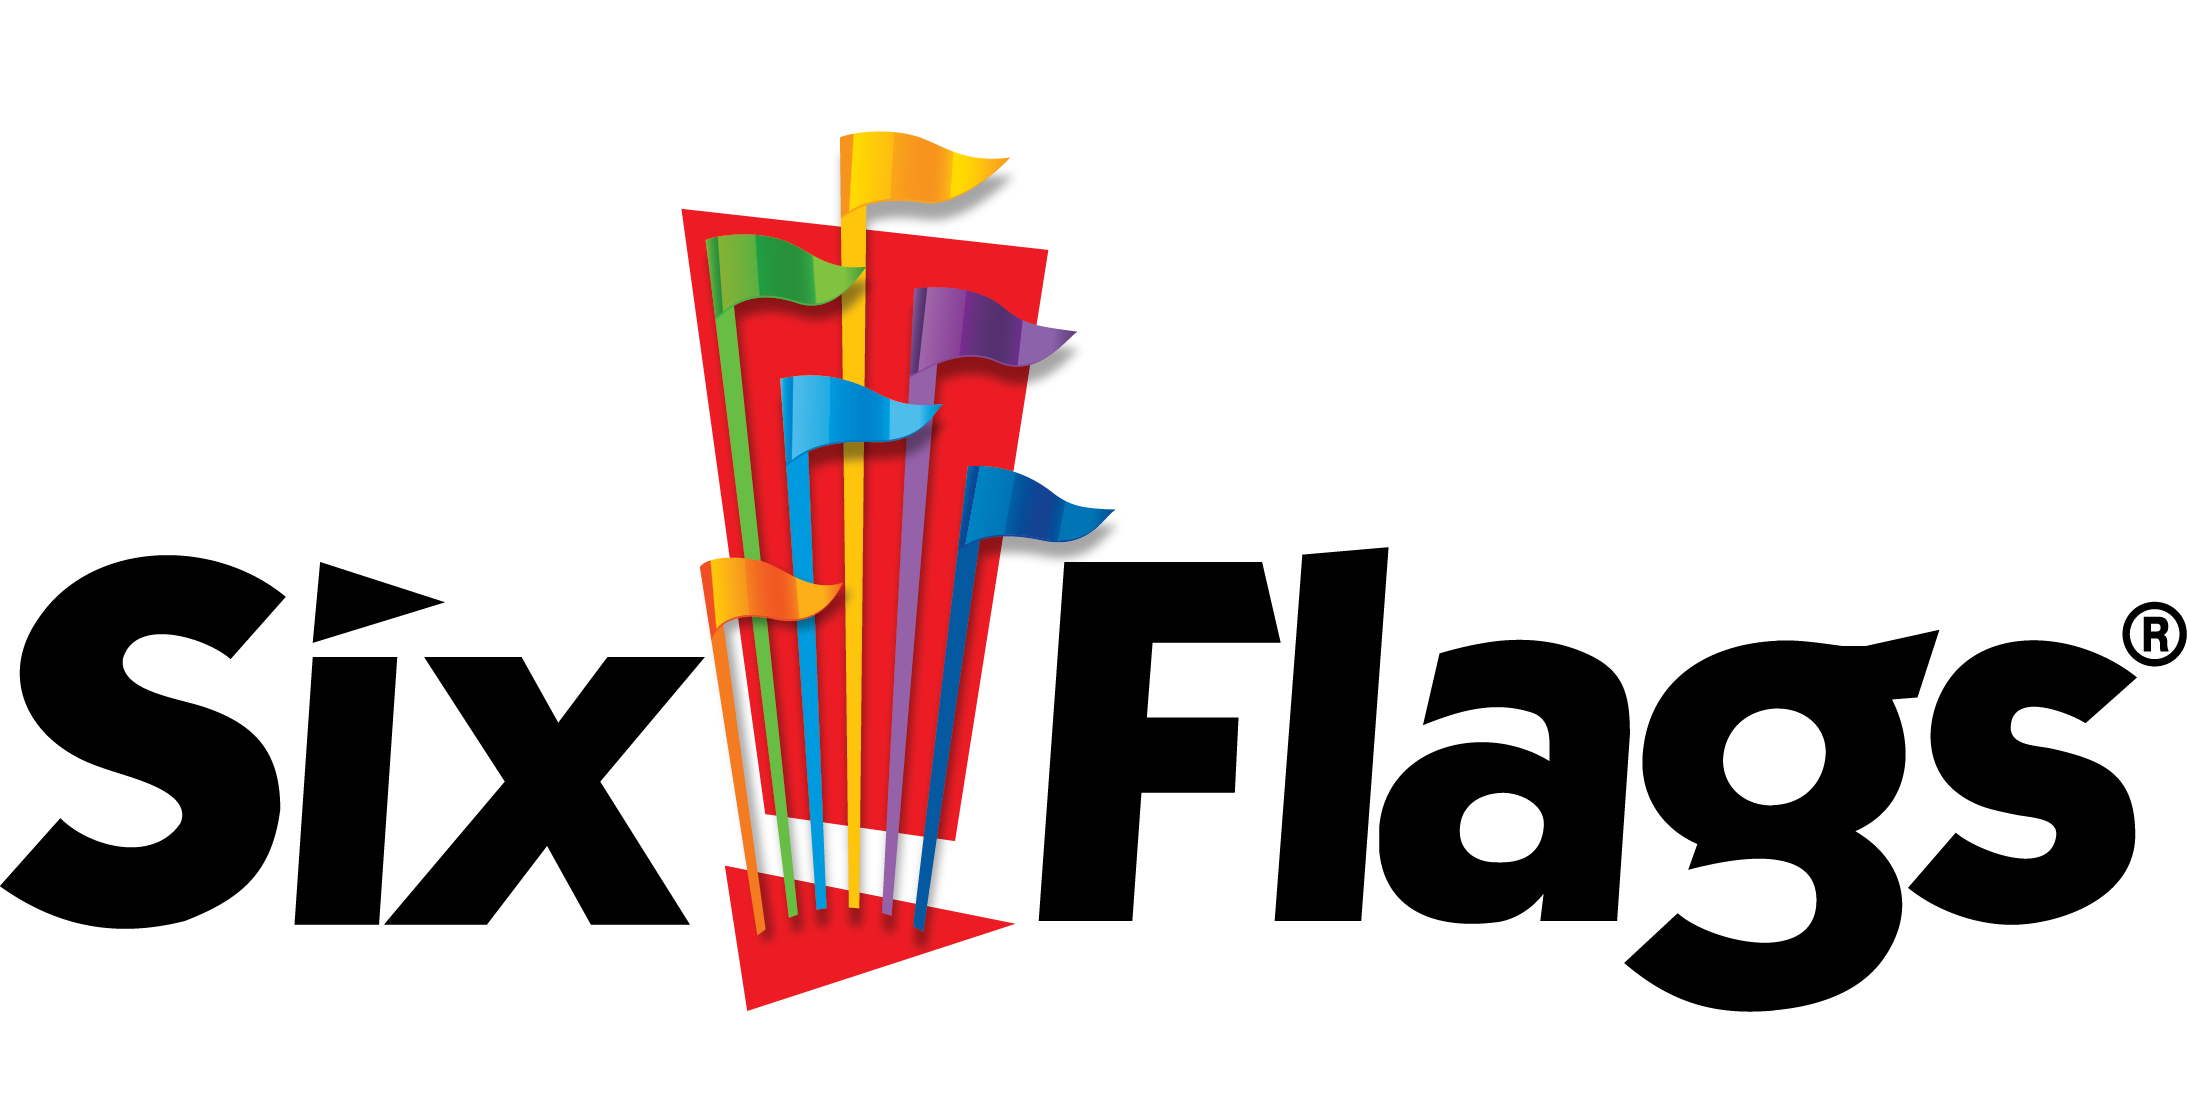 New_Six_Flags_logo.png